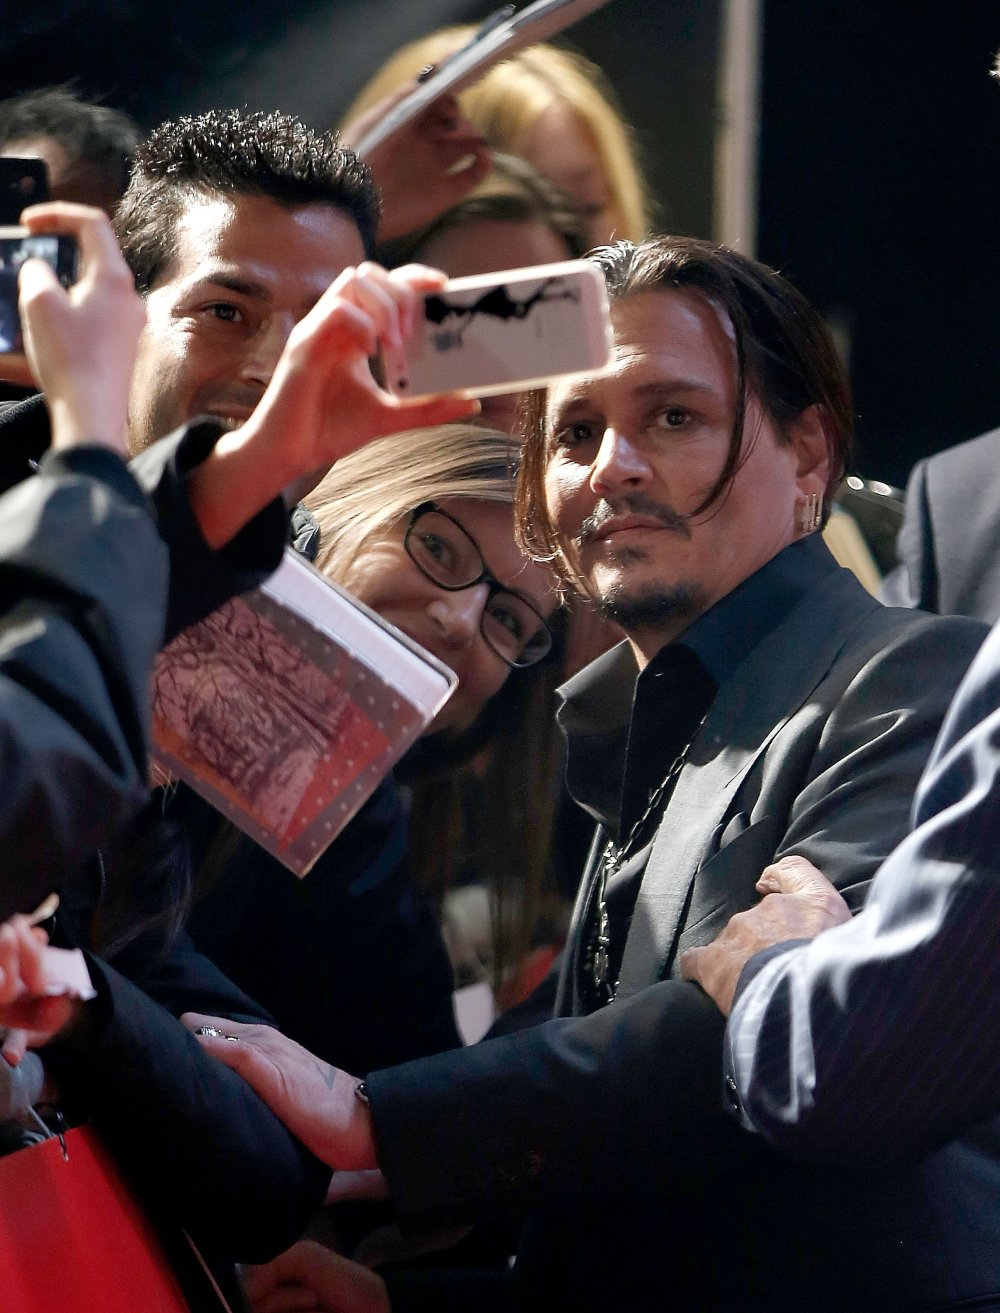 Johnny Depp poses for a camera on the red carpet for Black Mass